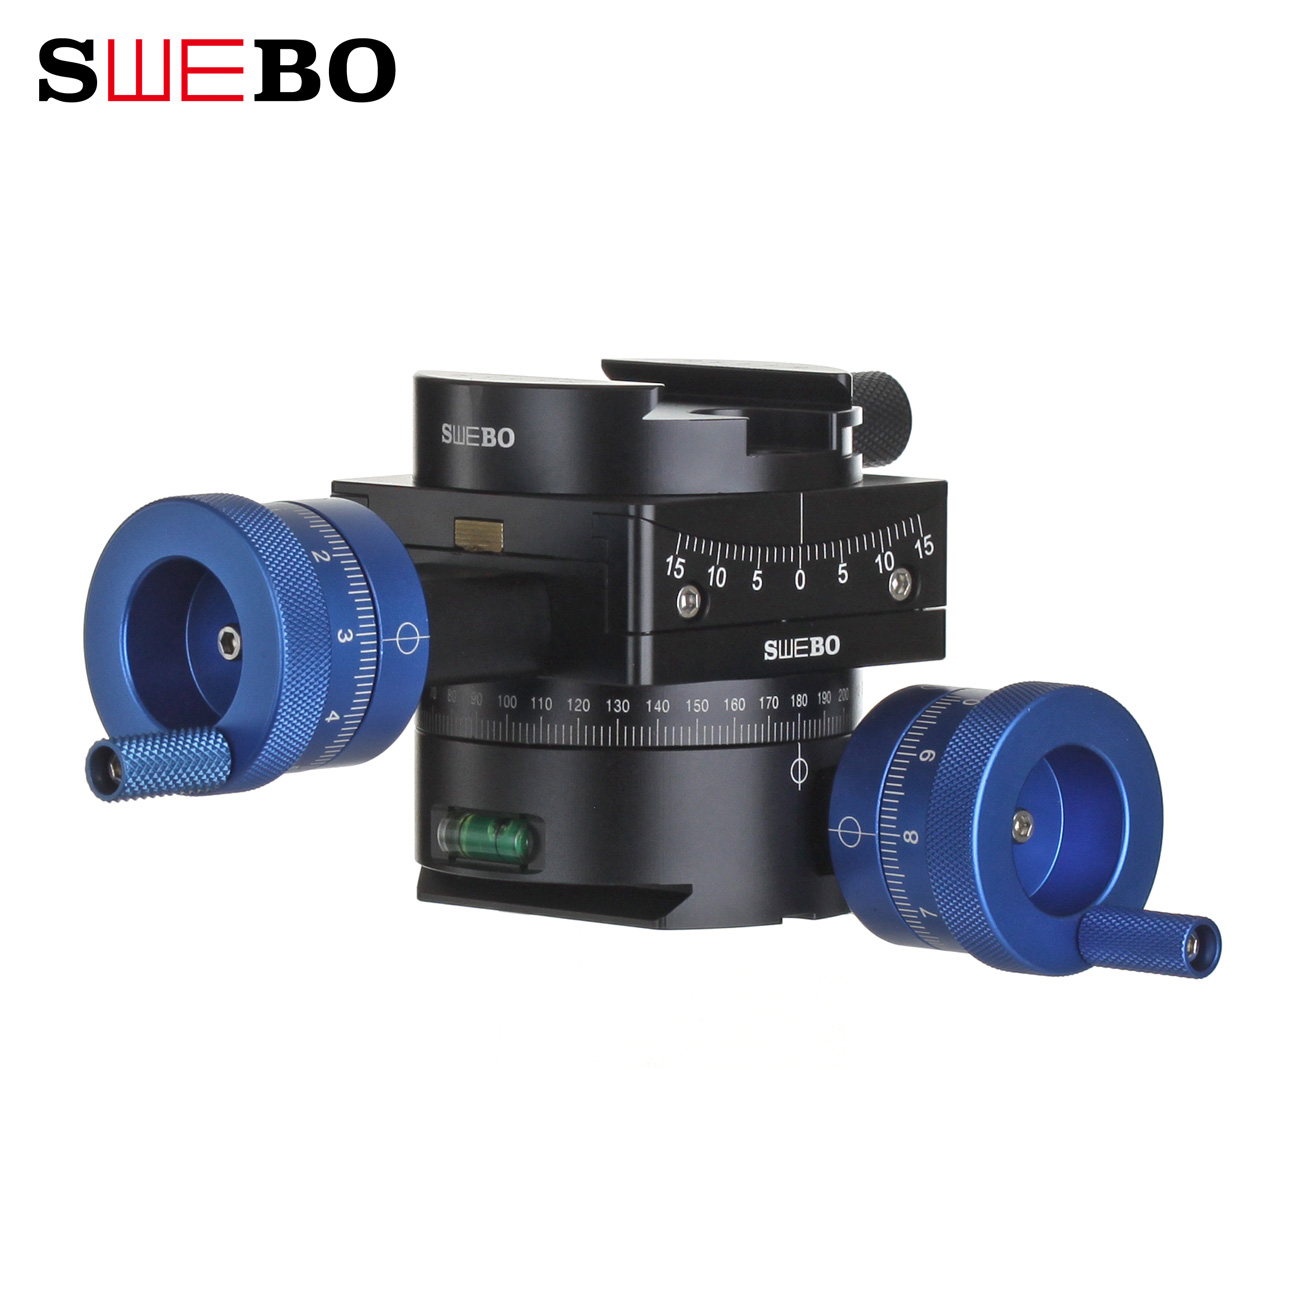 Swebo new dimension nd16 gear fine tuning theodolite pan tilt star panoramic time delay photography video shooting